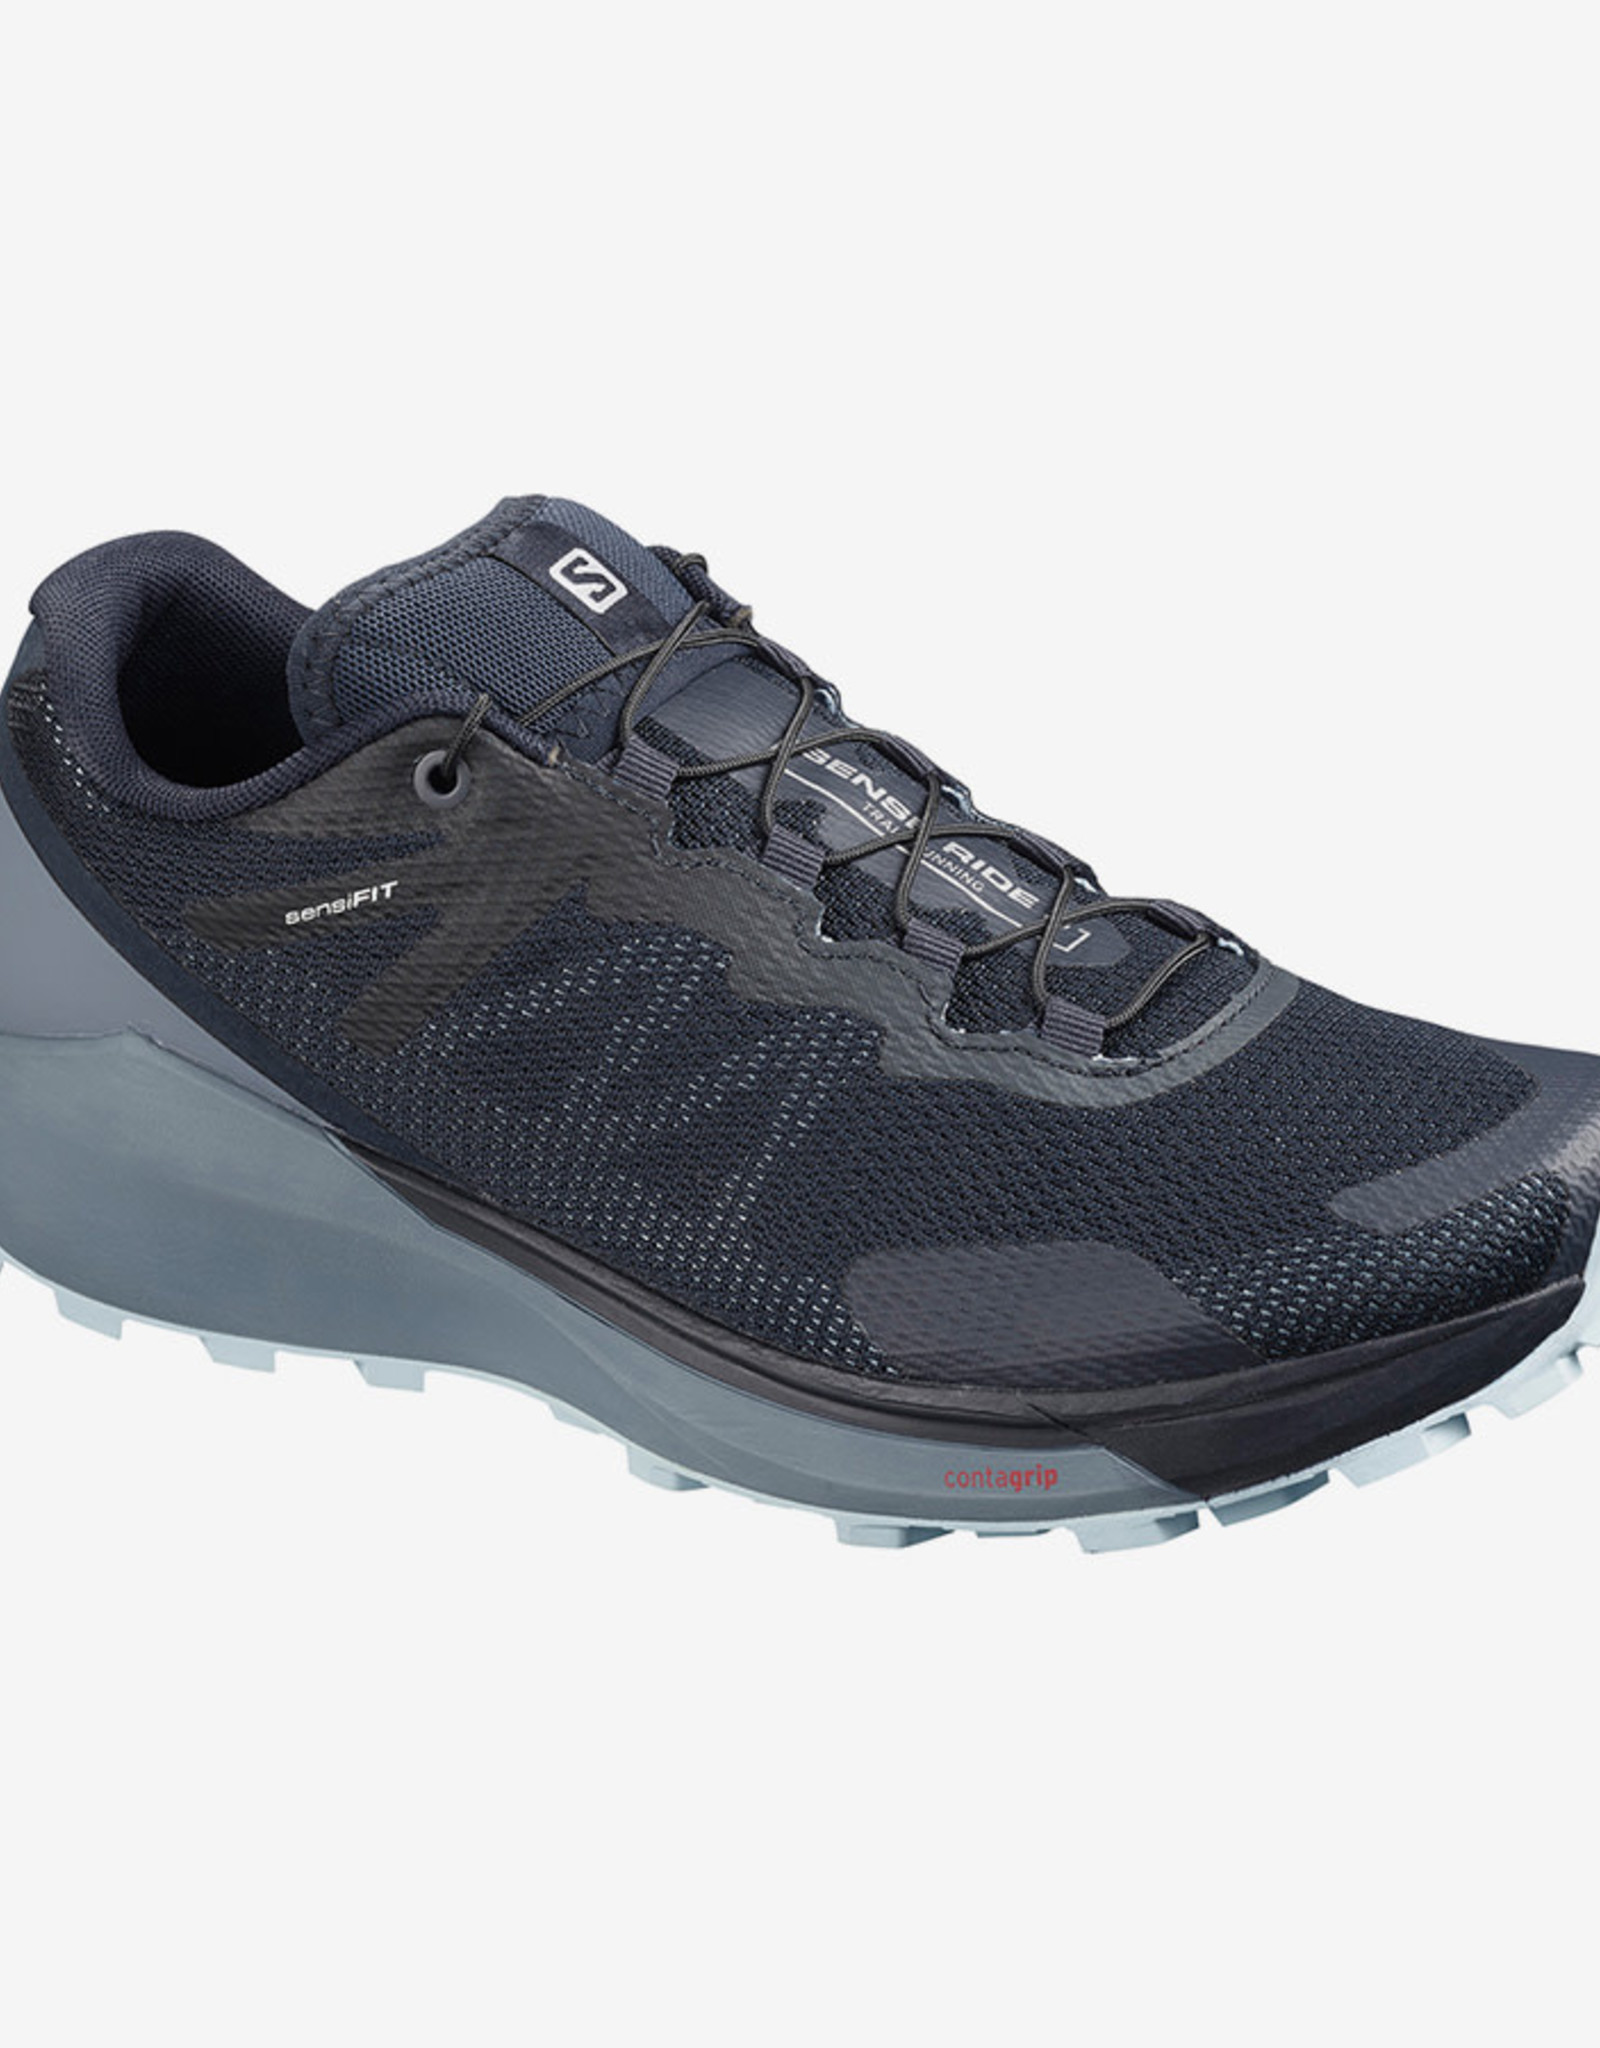 Salomon Salomon Women's Sense Ride 3